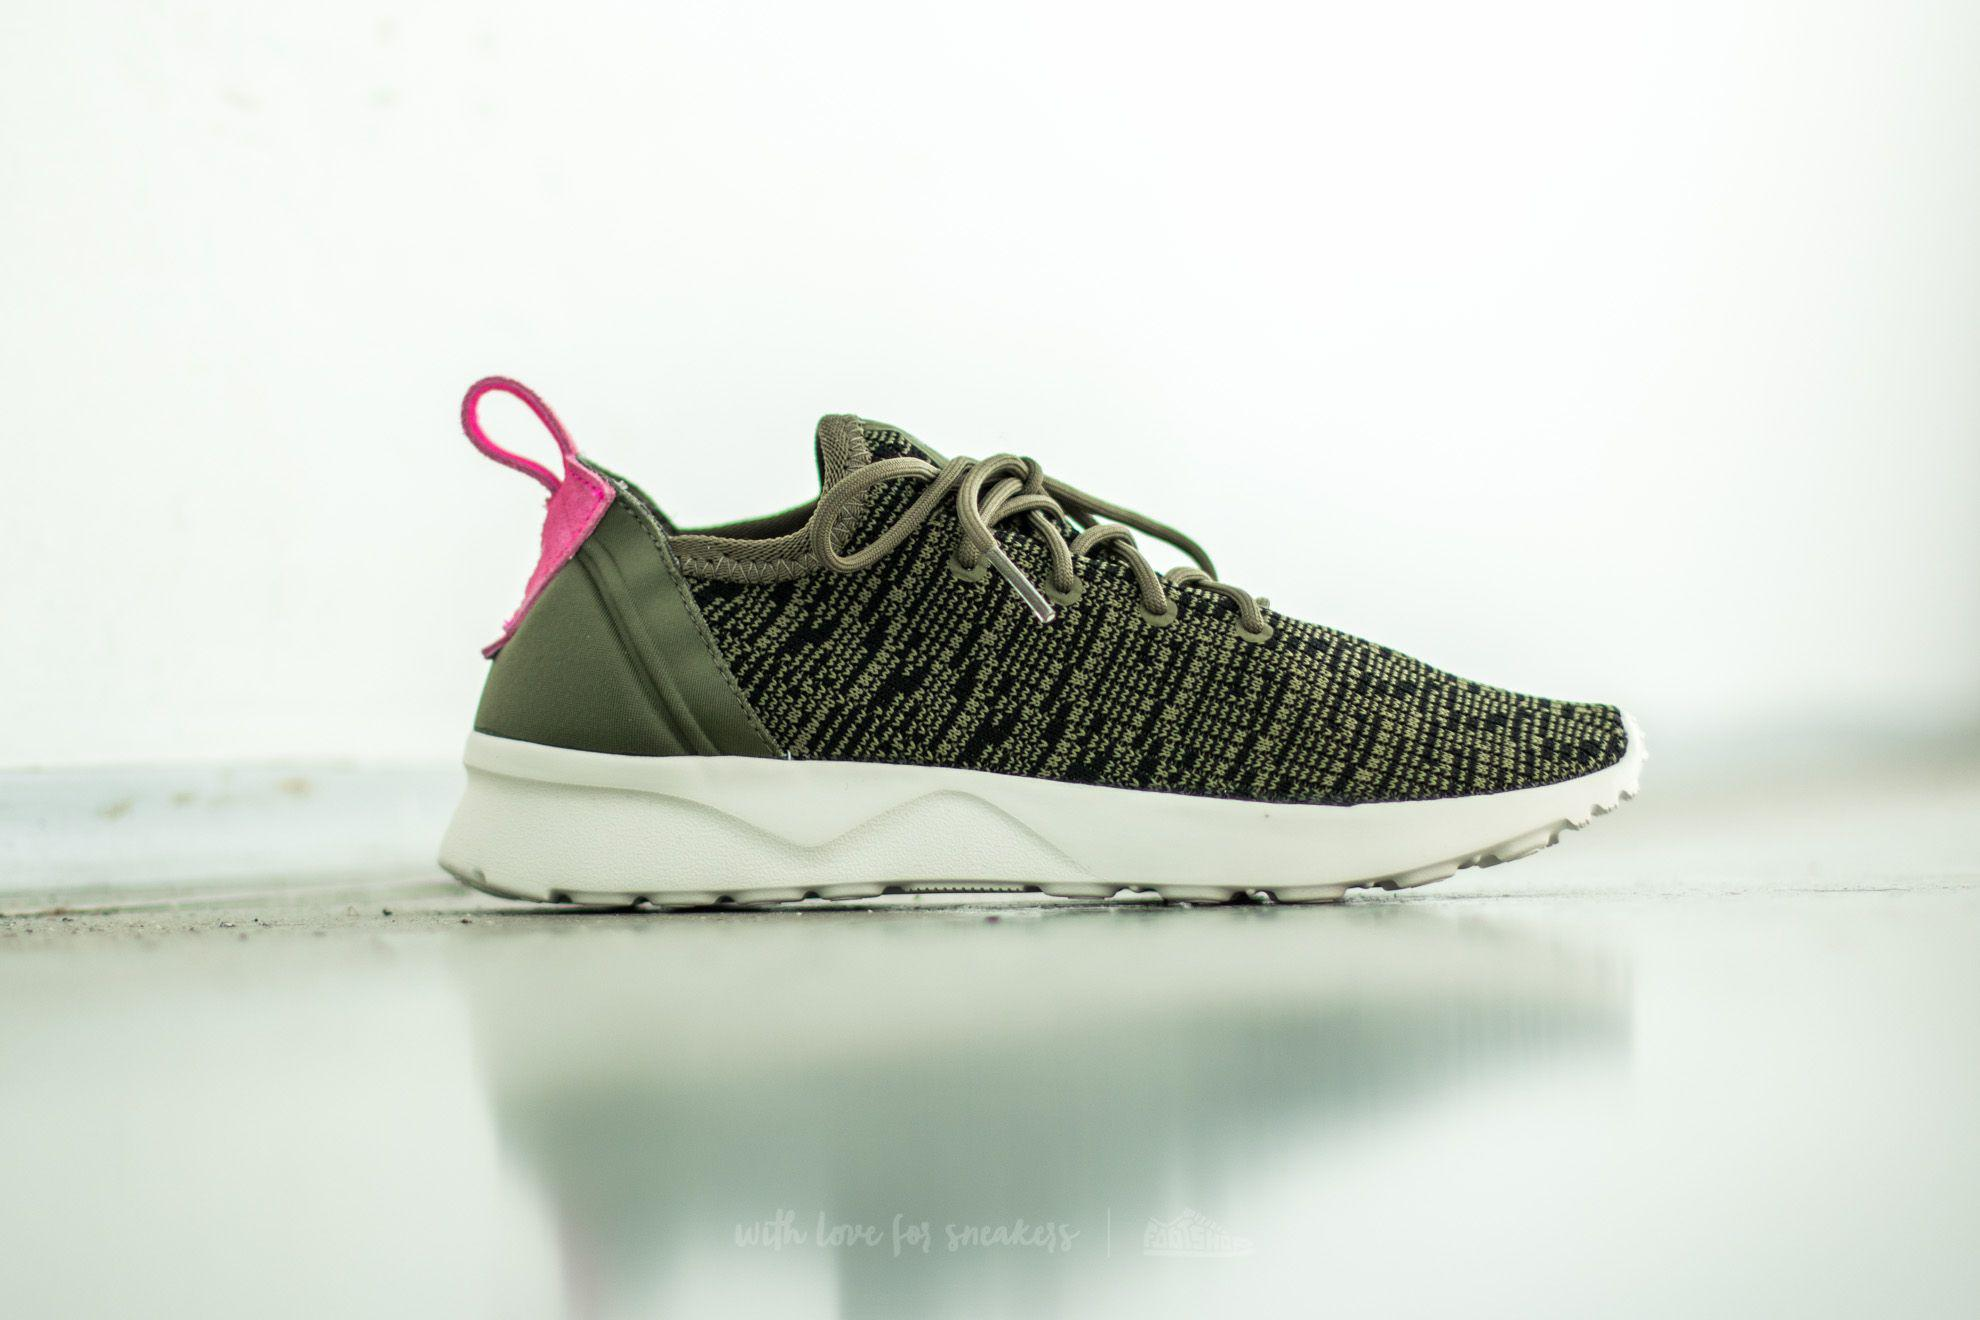 d5ad36be6538c Lyst - adidas Originals Adidas Zx Flux Adv Virtue Sock W Olive Cargo ...